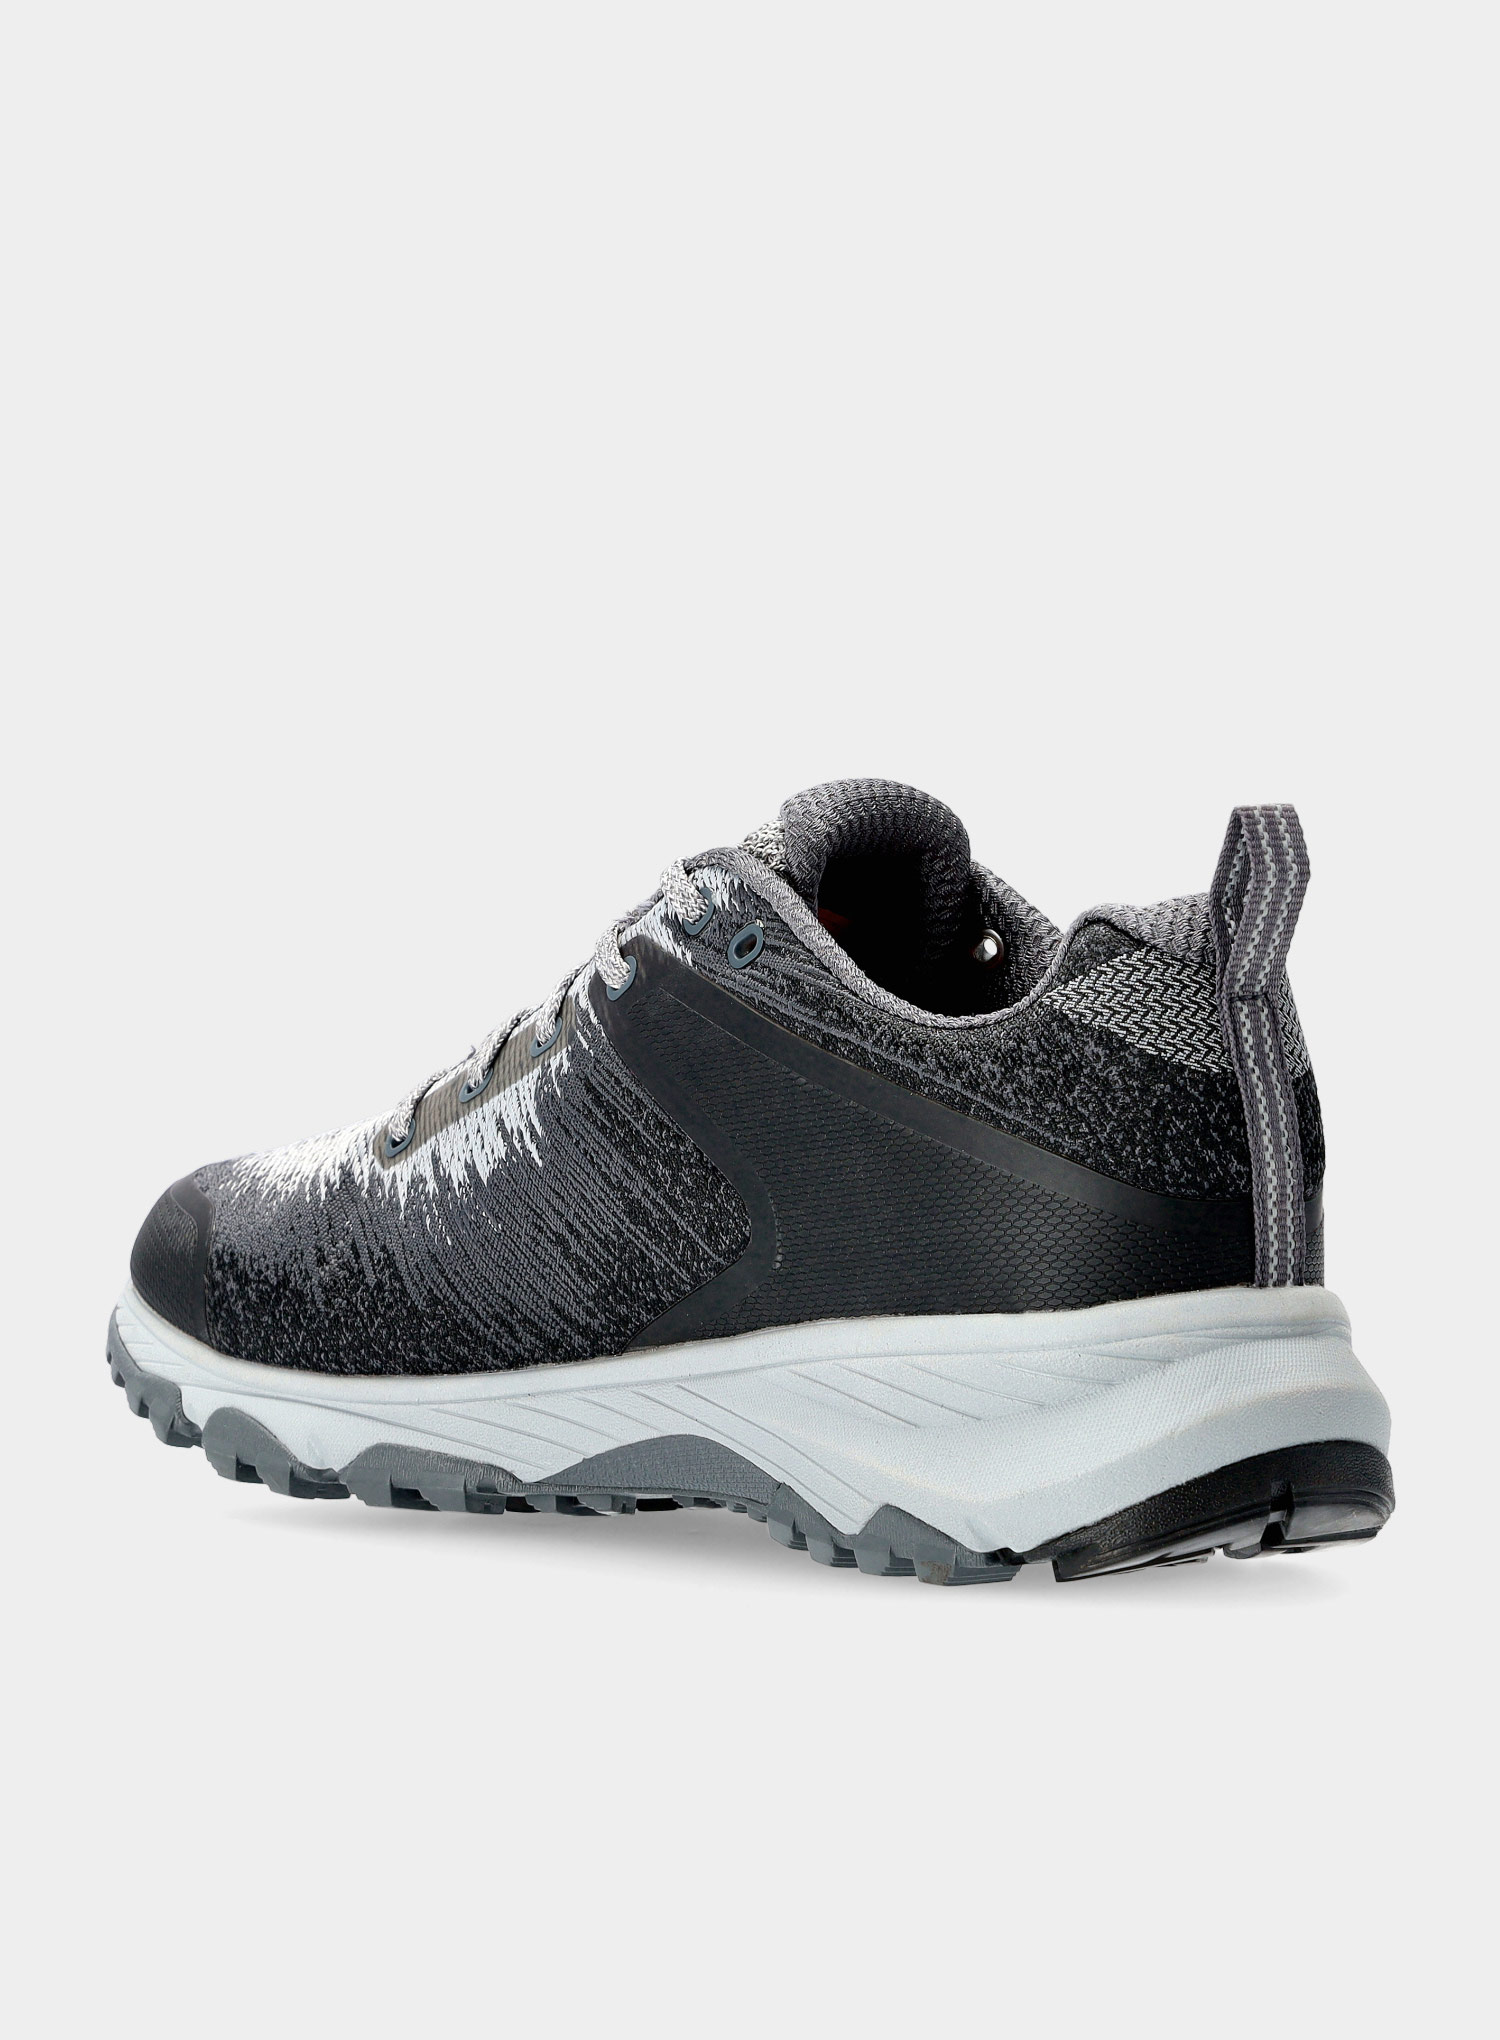 Buty The North Face Ultra Fastpack IV FutureLight - grey - zdjęcie nr. 7